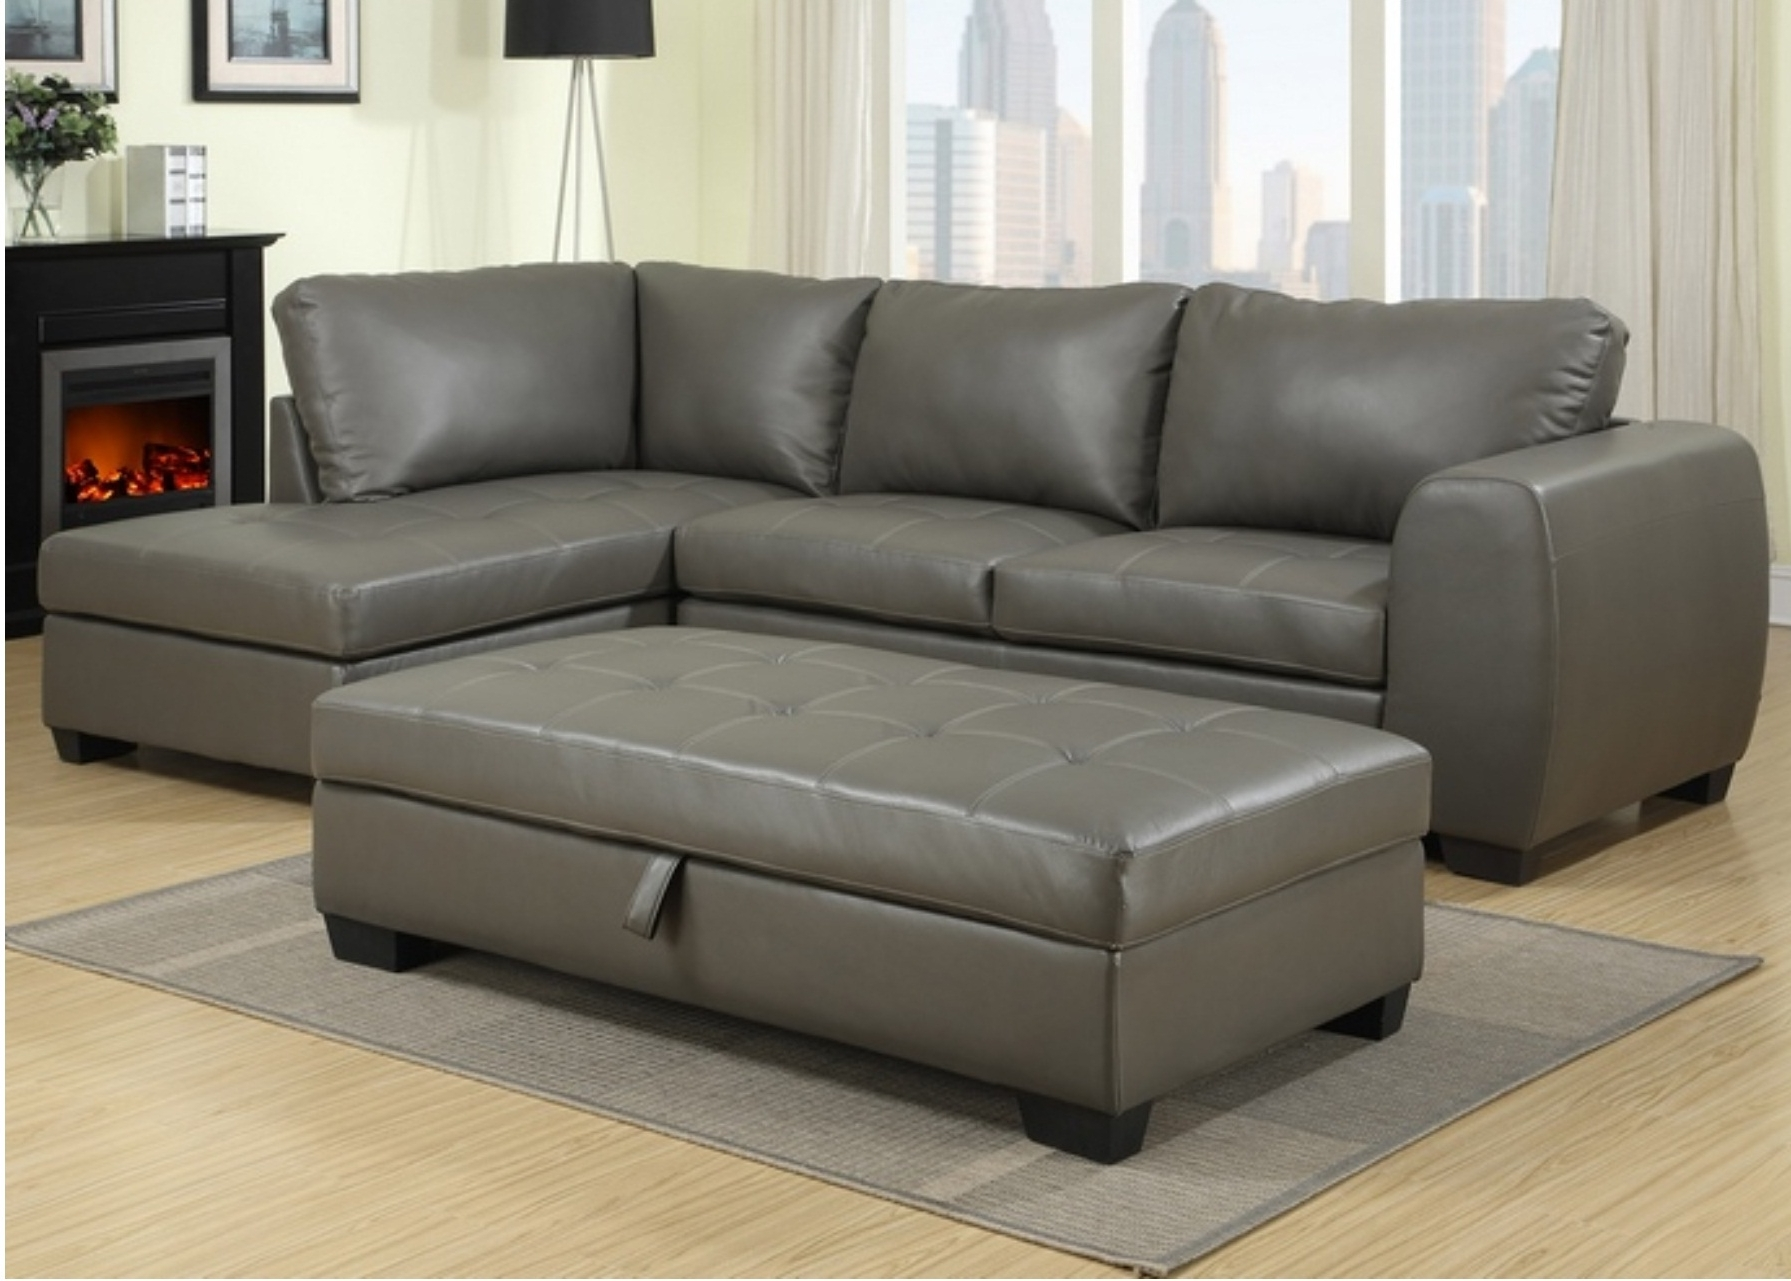 Newest Sectional Couch Bluetonrniture Sets Sofa Inches Day Fiance With Sectional Sofas At Calgary (View 7 of 15)